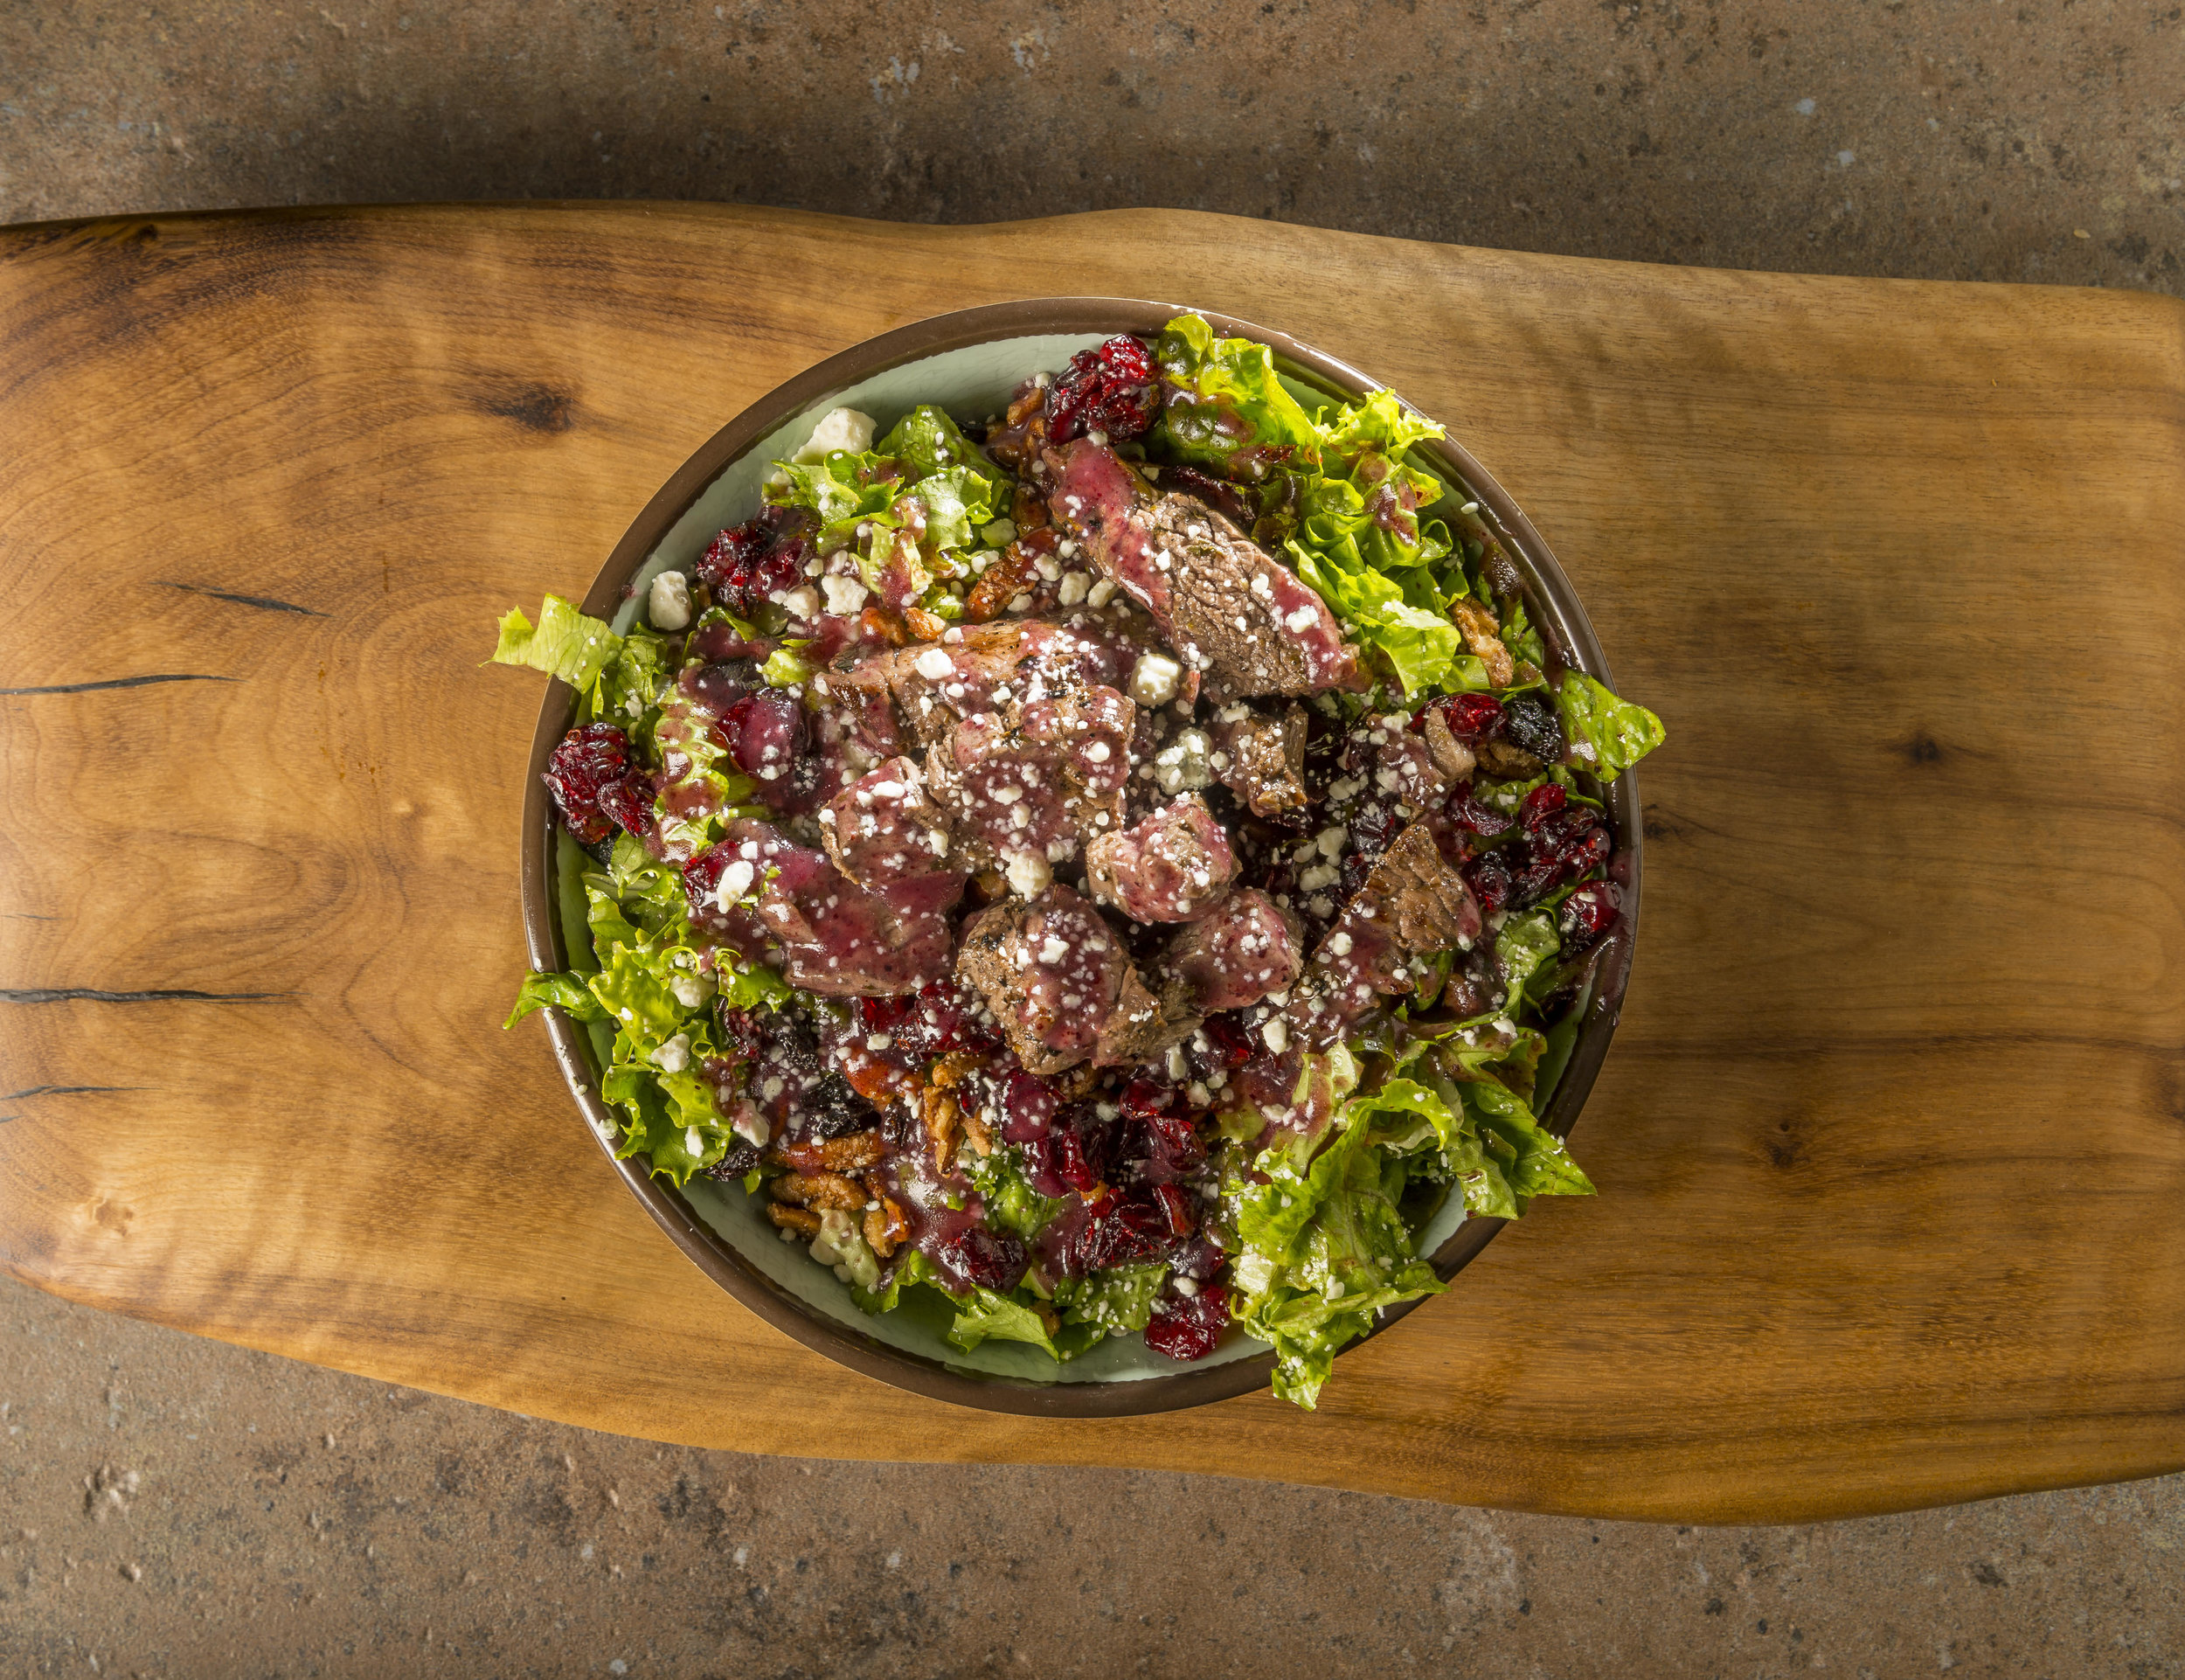 Black & Bleu - Marinated steak, candied pecans, dried cranberries, bleu cheese, and house-made blueberry-pomegranate dressing.$11.99